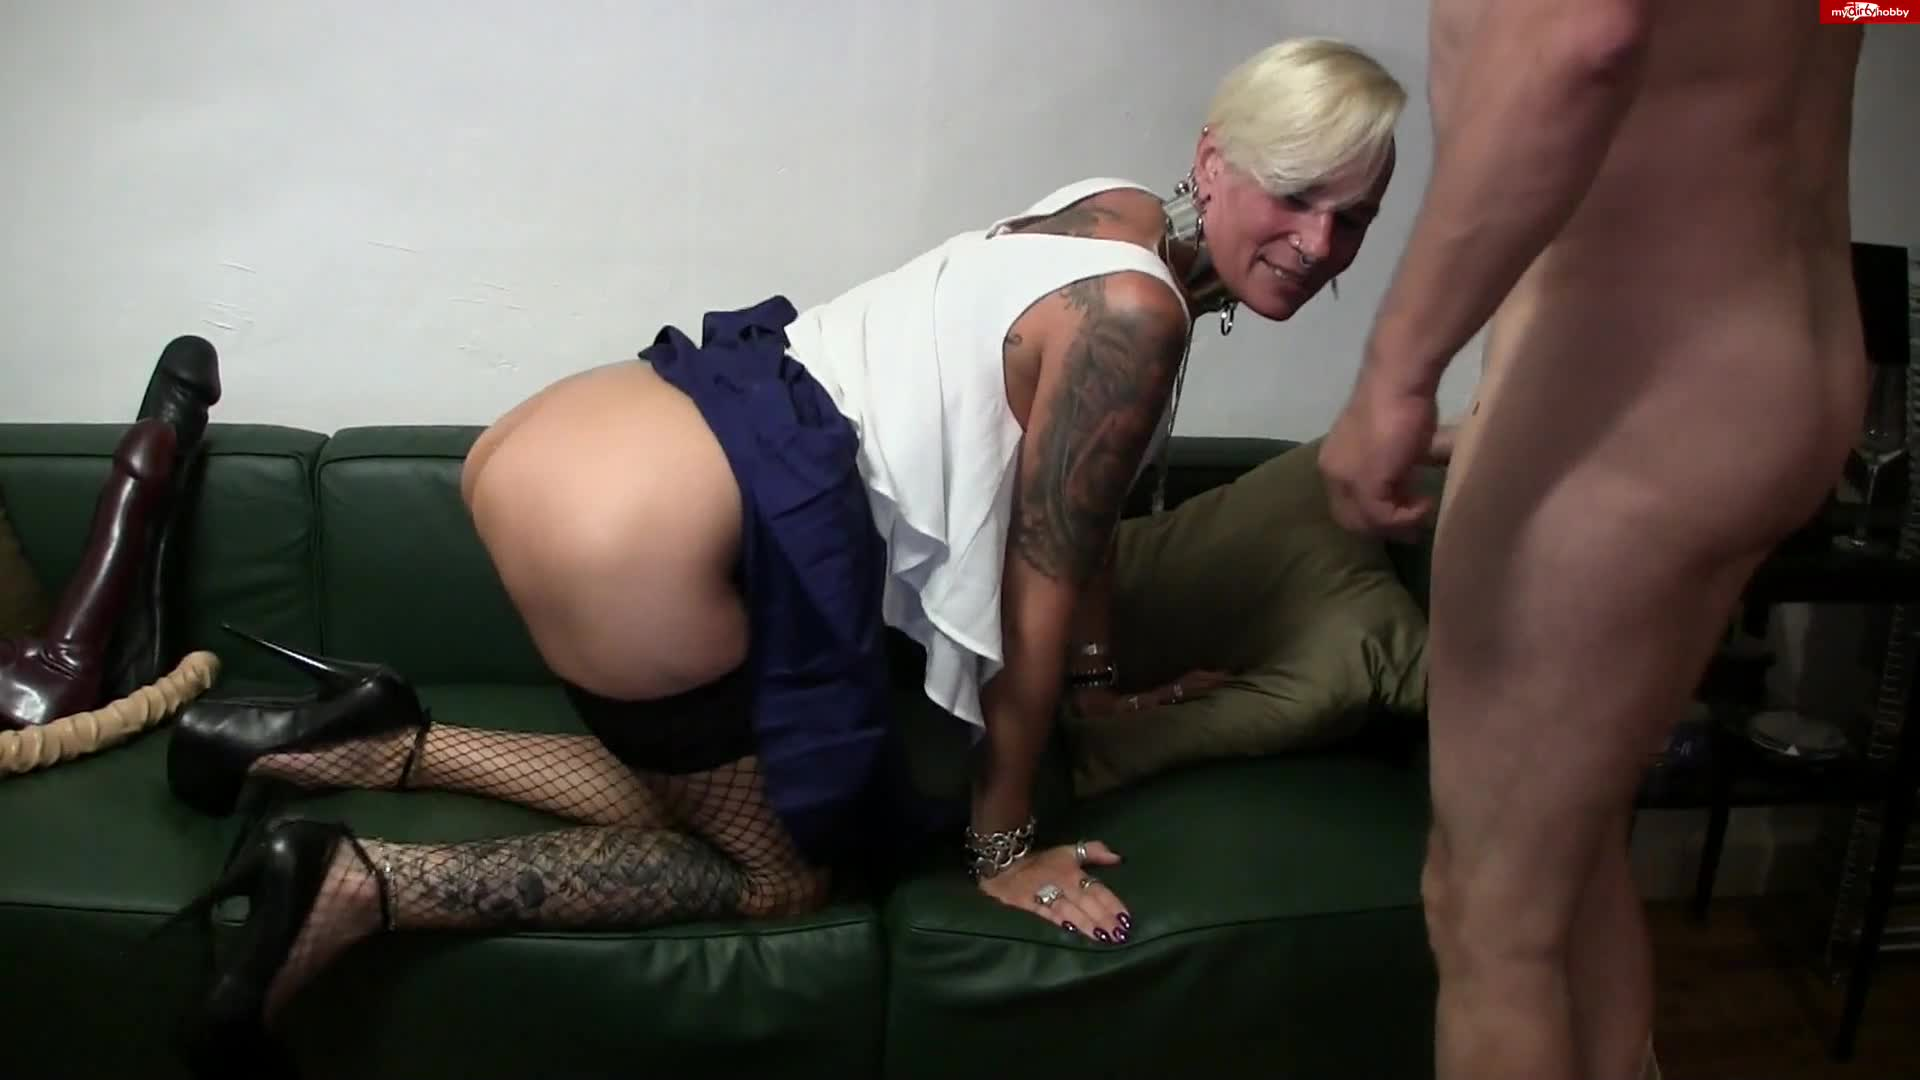 Lady-isabell666 Search Results